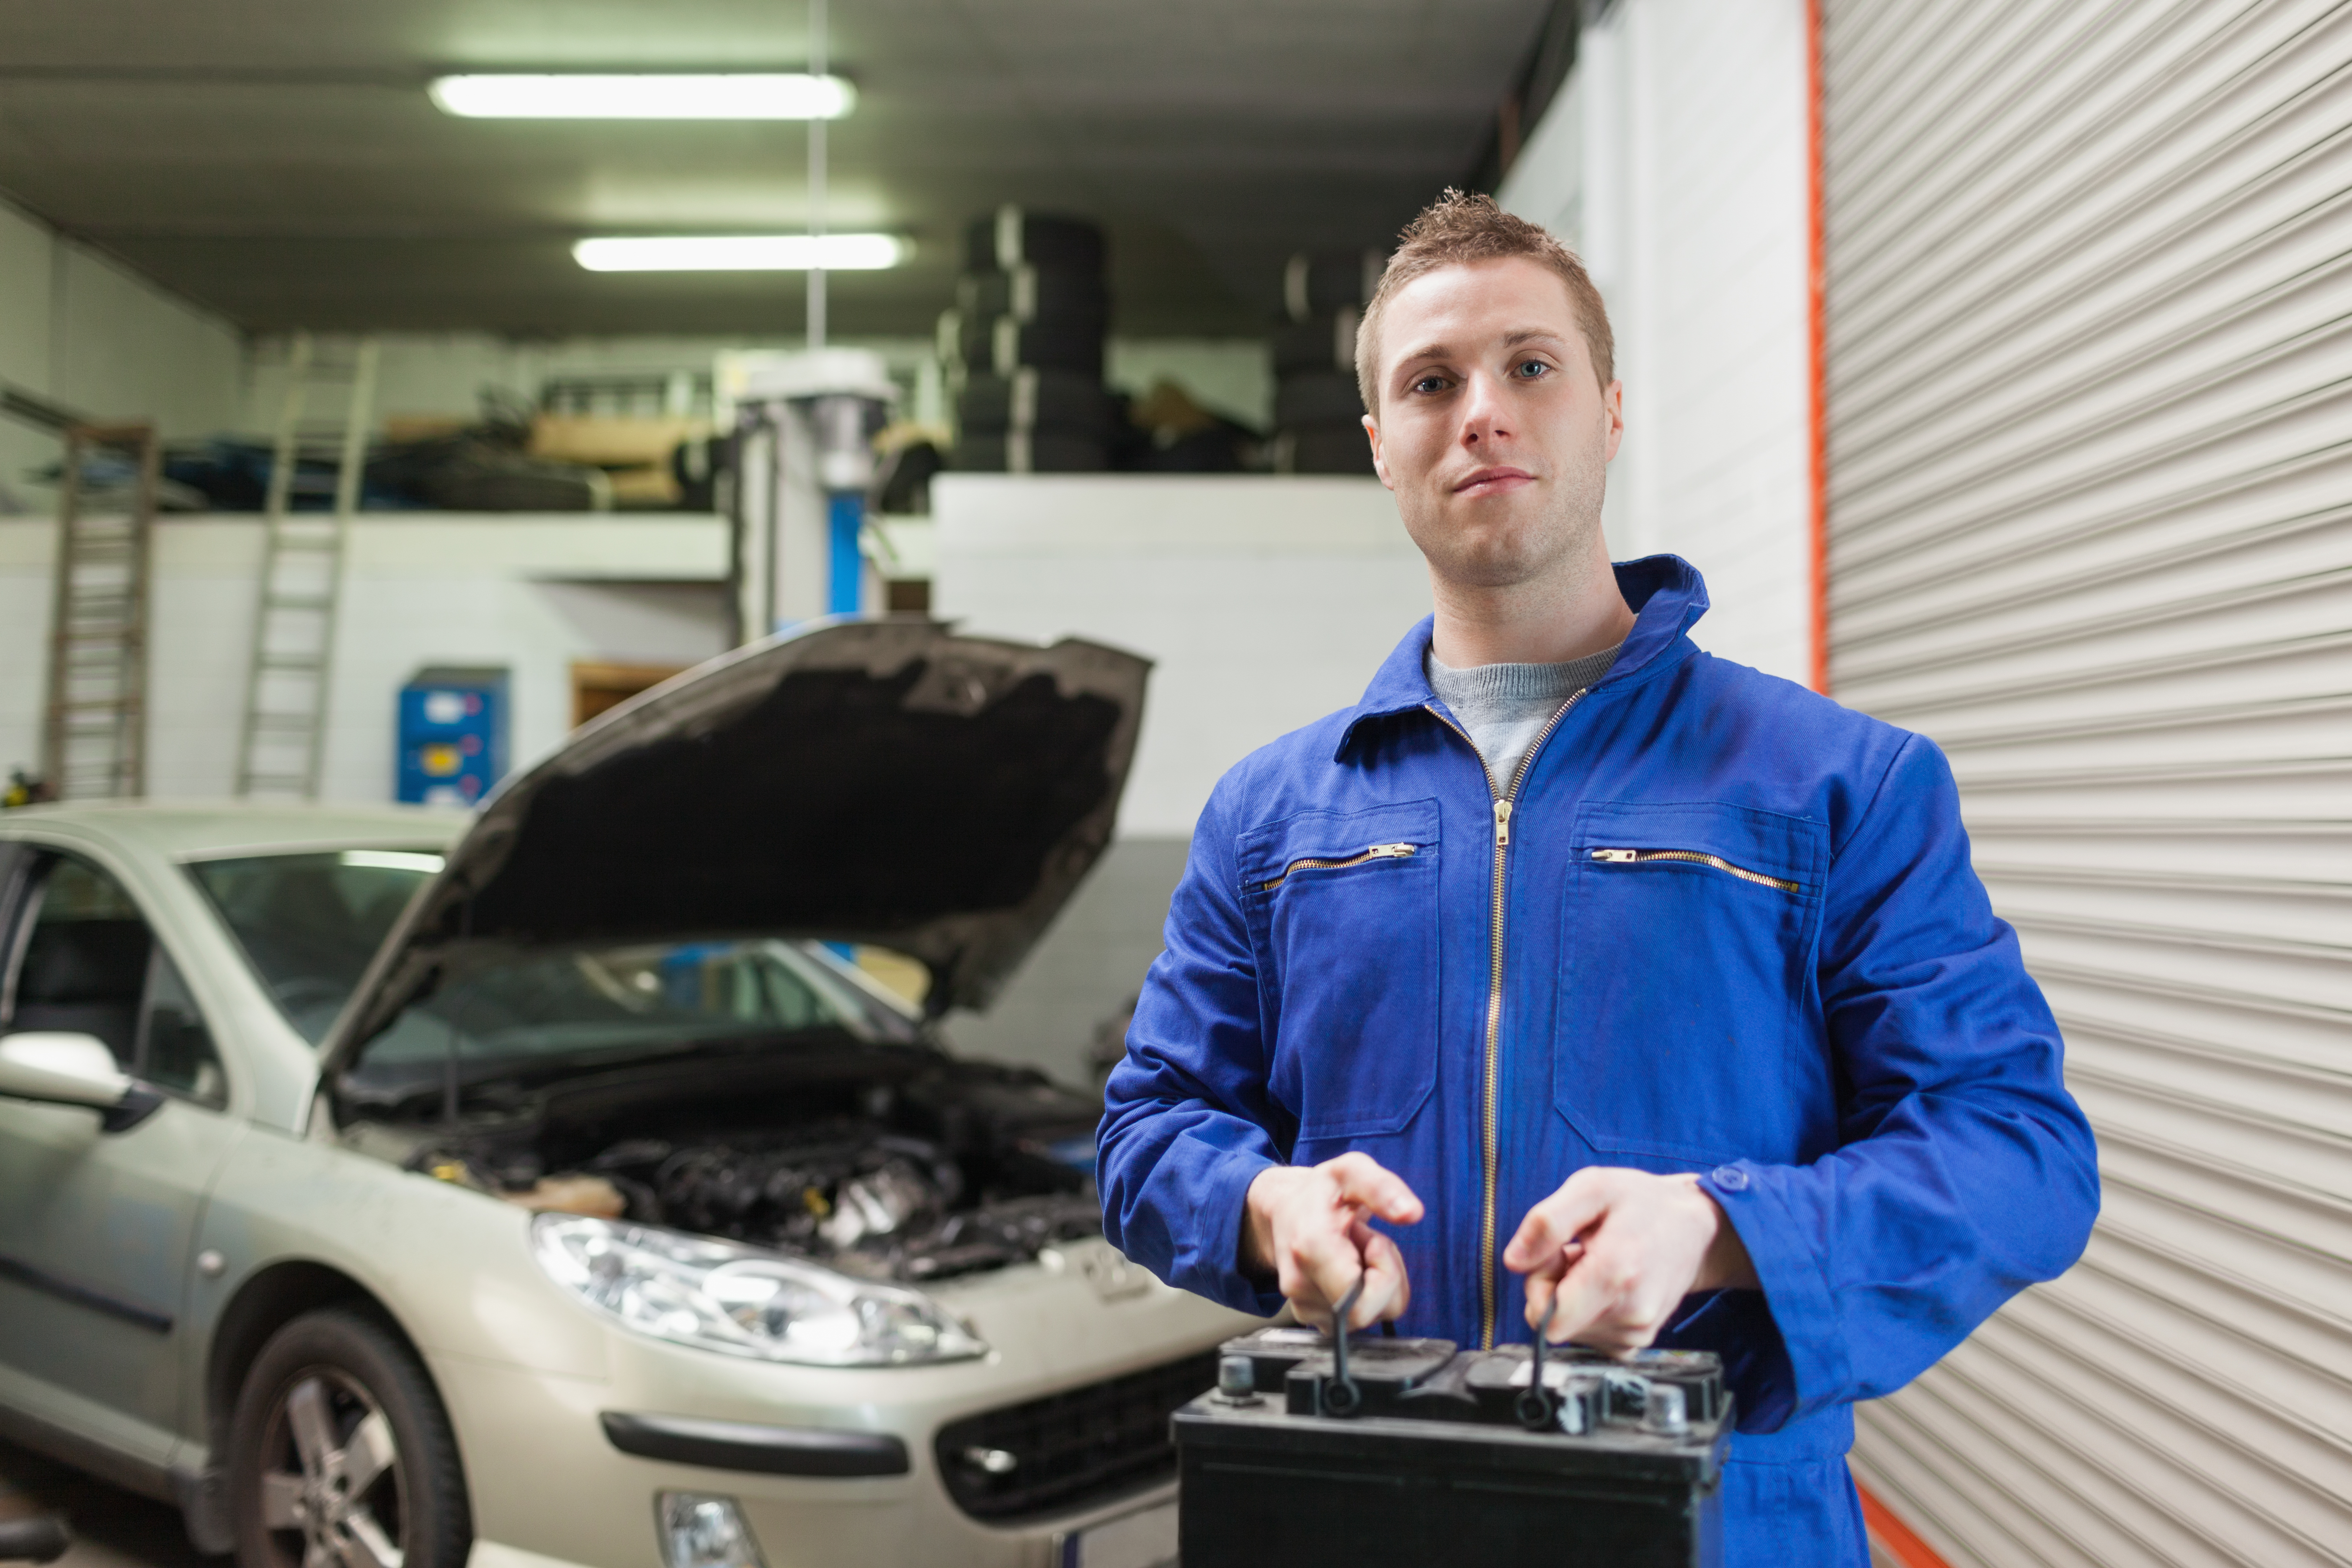 How To Change a Car Battery in 12 Easy Steps